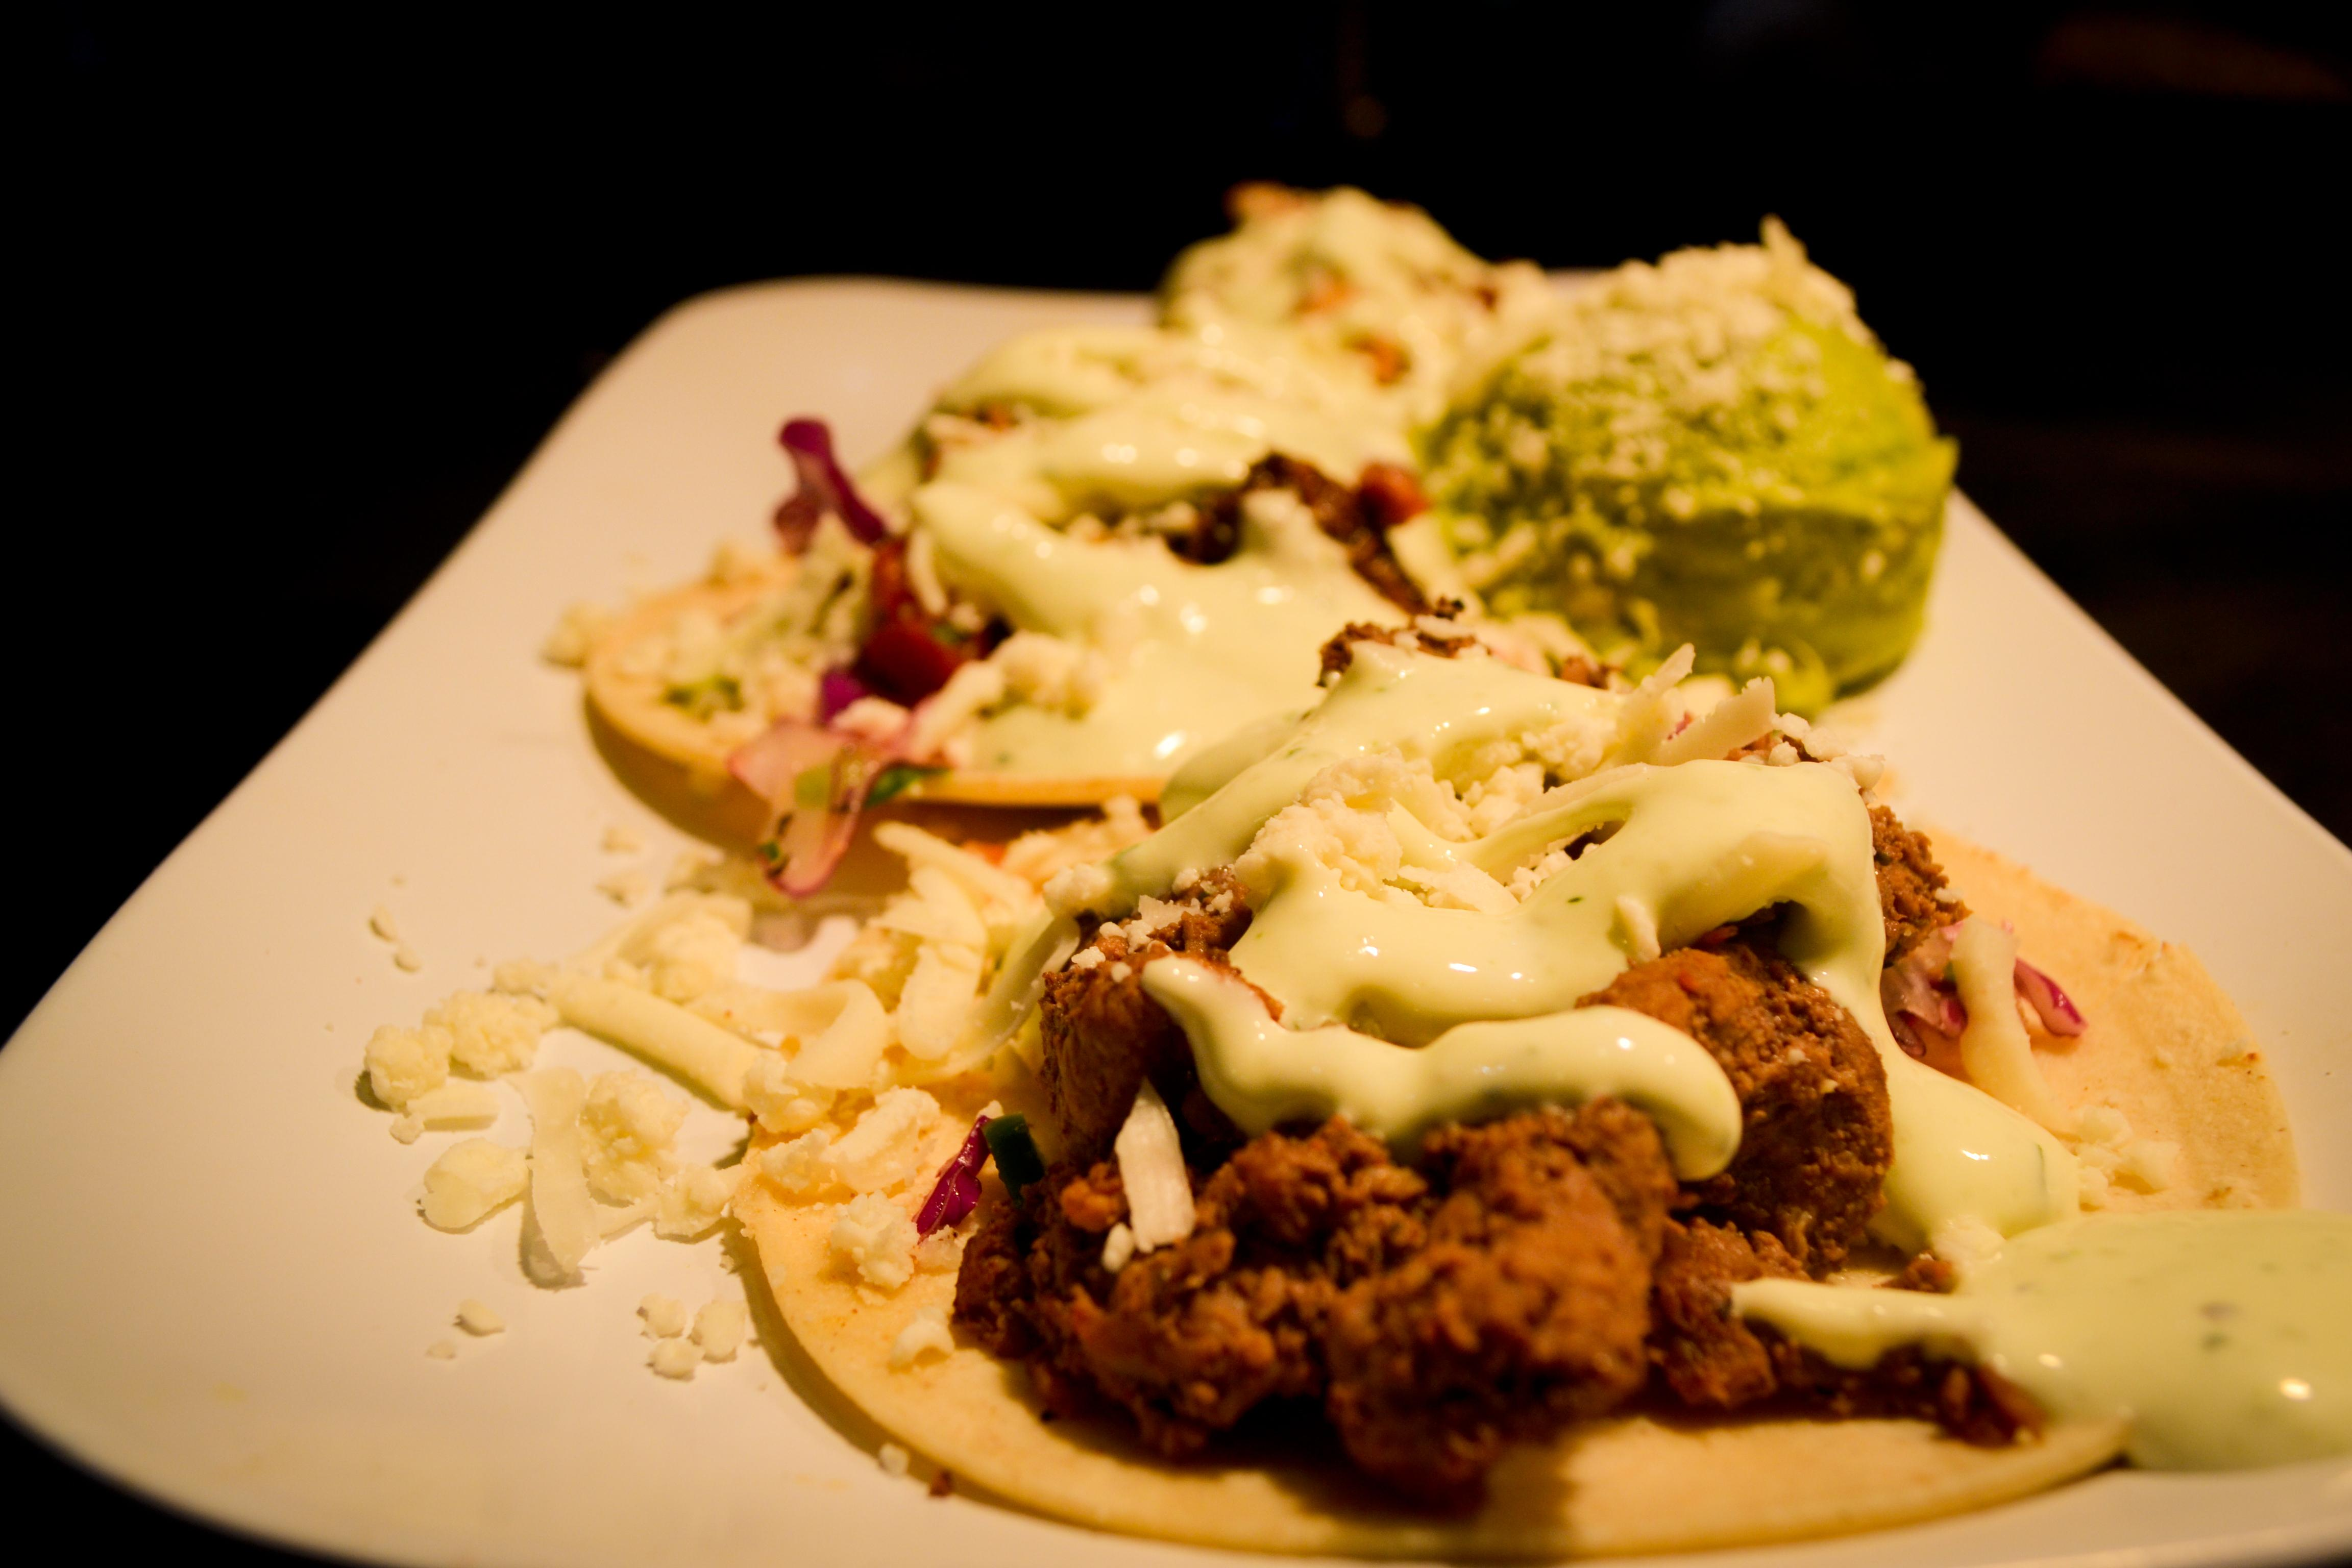 The tacos are made to order and come with various meat choices